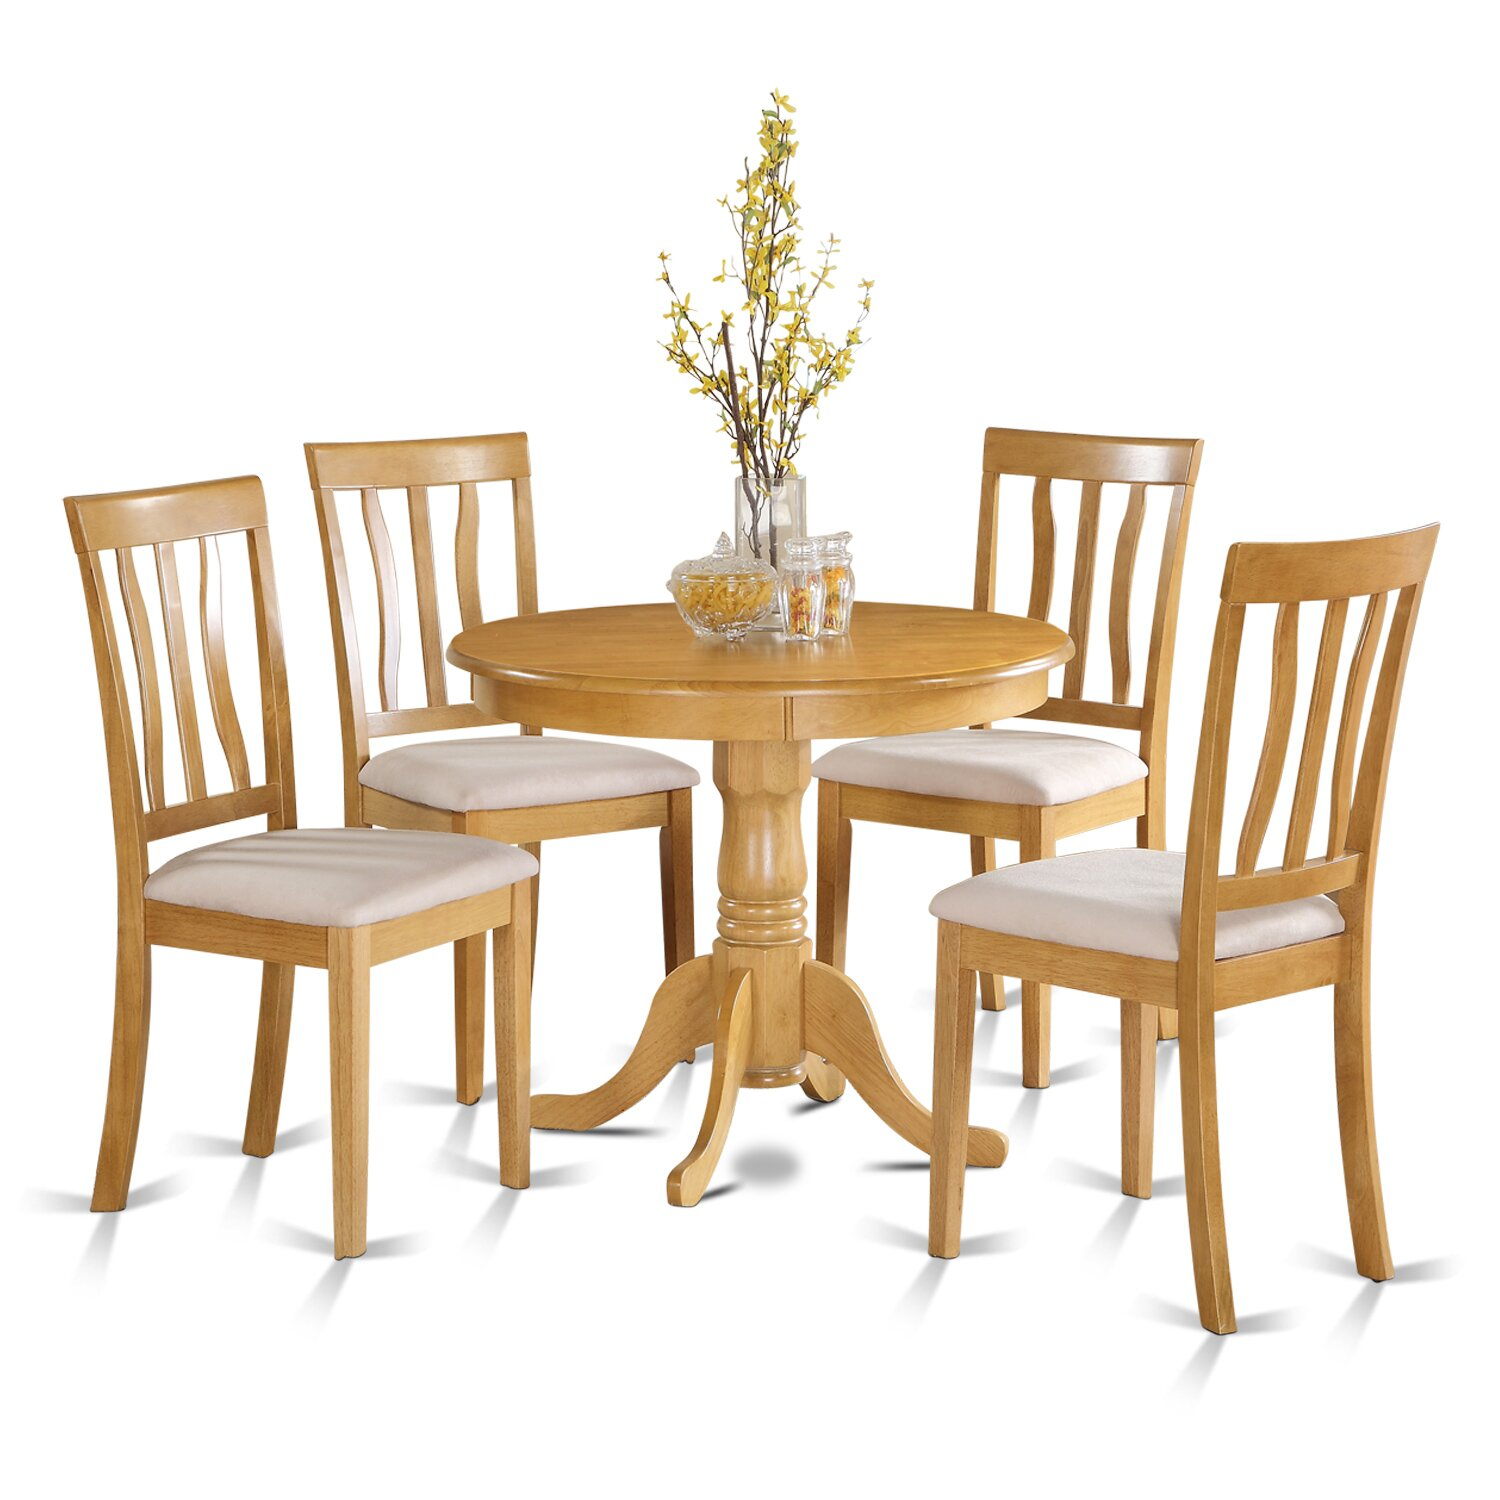 Wooden importers 5 piece dining set reviews wayfair for Kitchen and dining room chairs